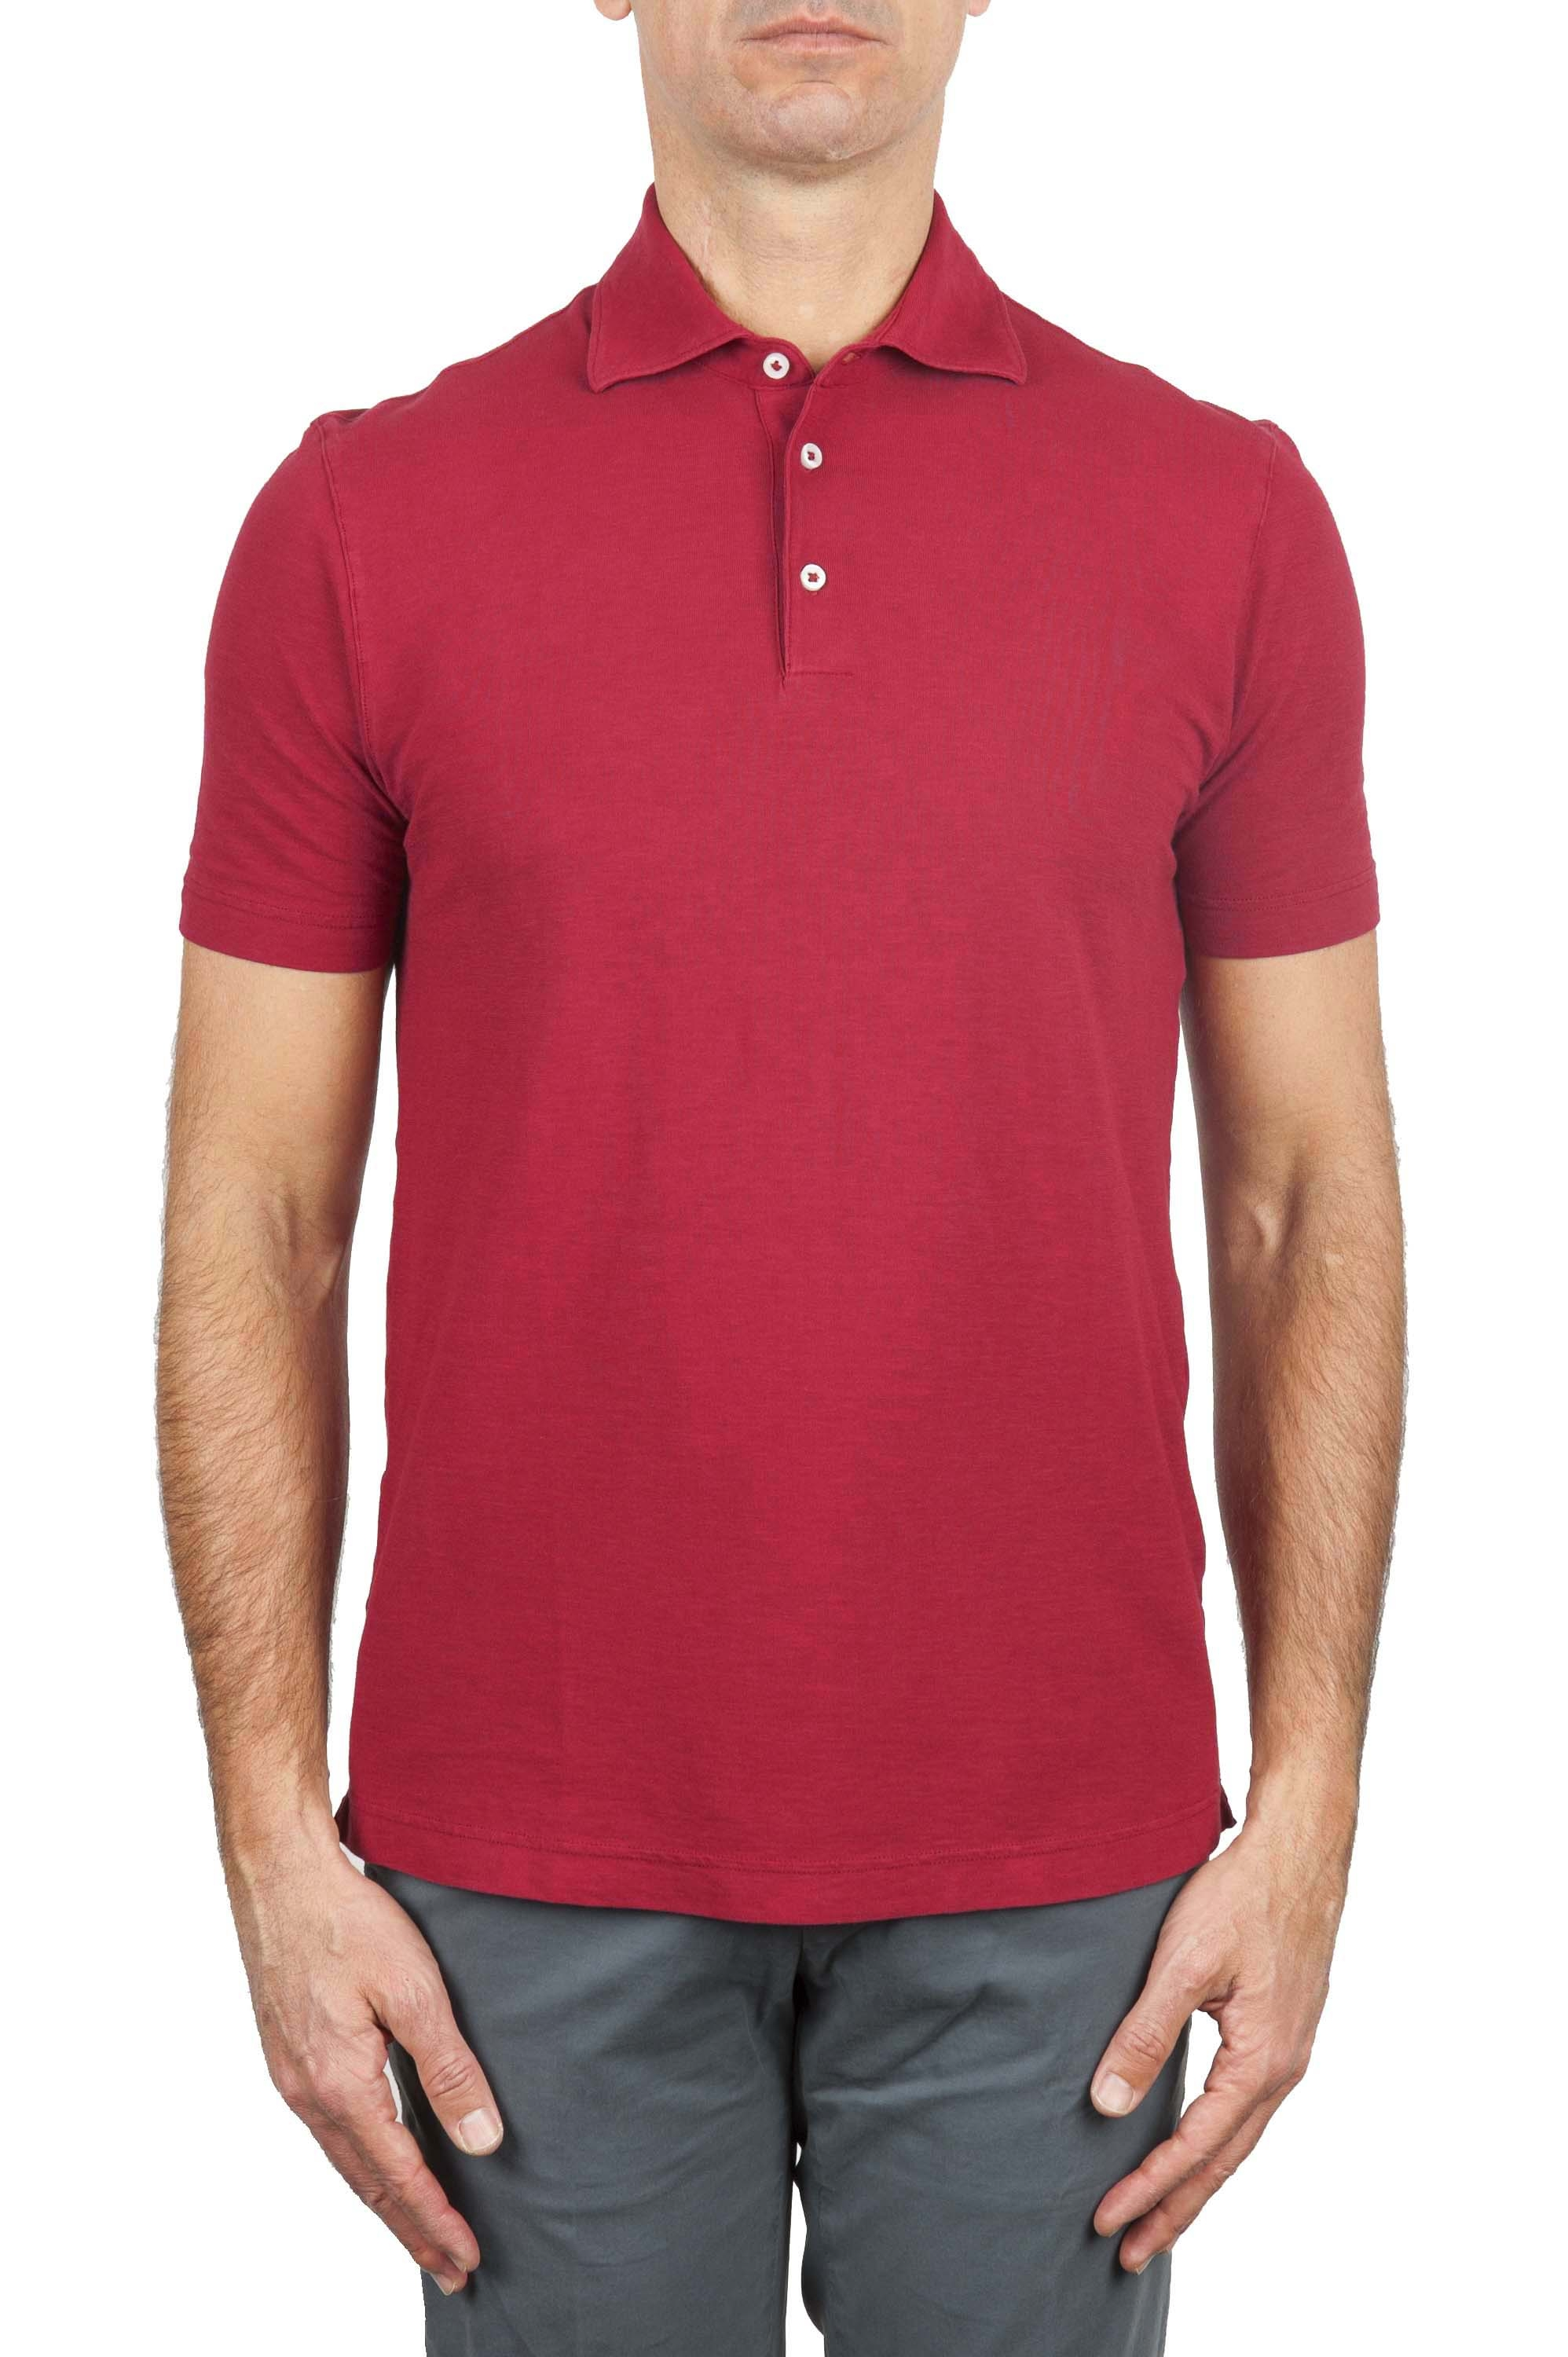 SBU 01690 Classic short sleeve red cotton crepe polo shirt 01